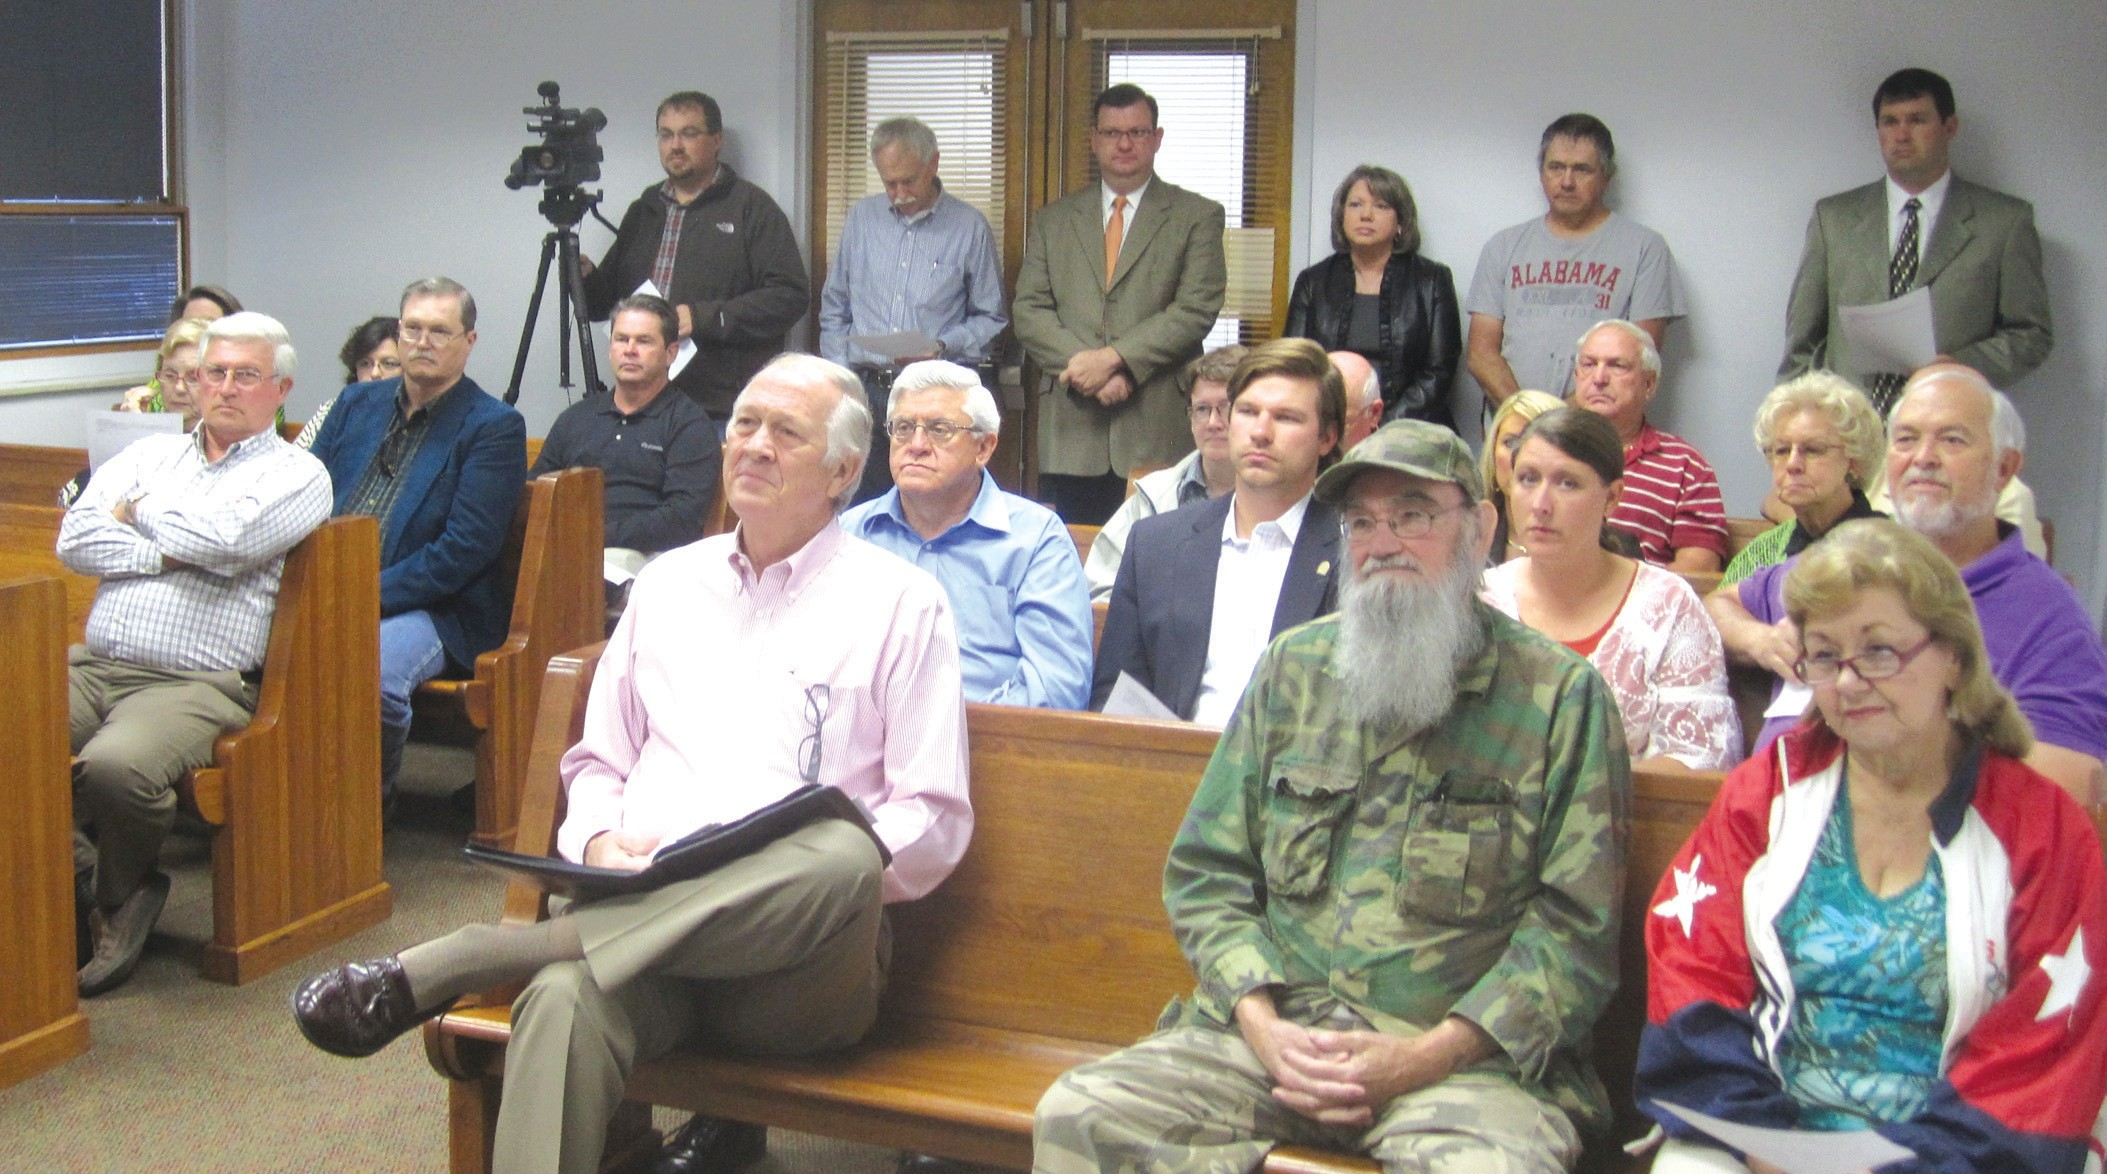 FULL HOUSE. Monday's commission business meeting turned out a rare standingroom only crowd for the resolution of a postponed decision on funding for what came to be seen as dueling chambers of commerce.